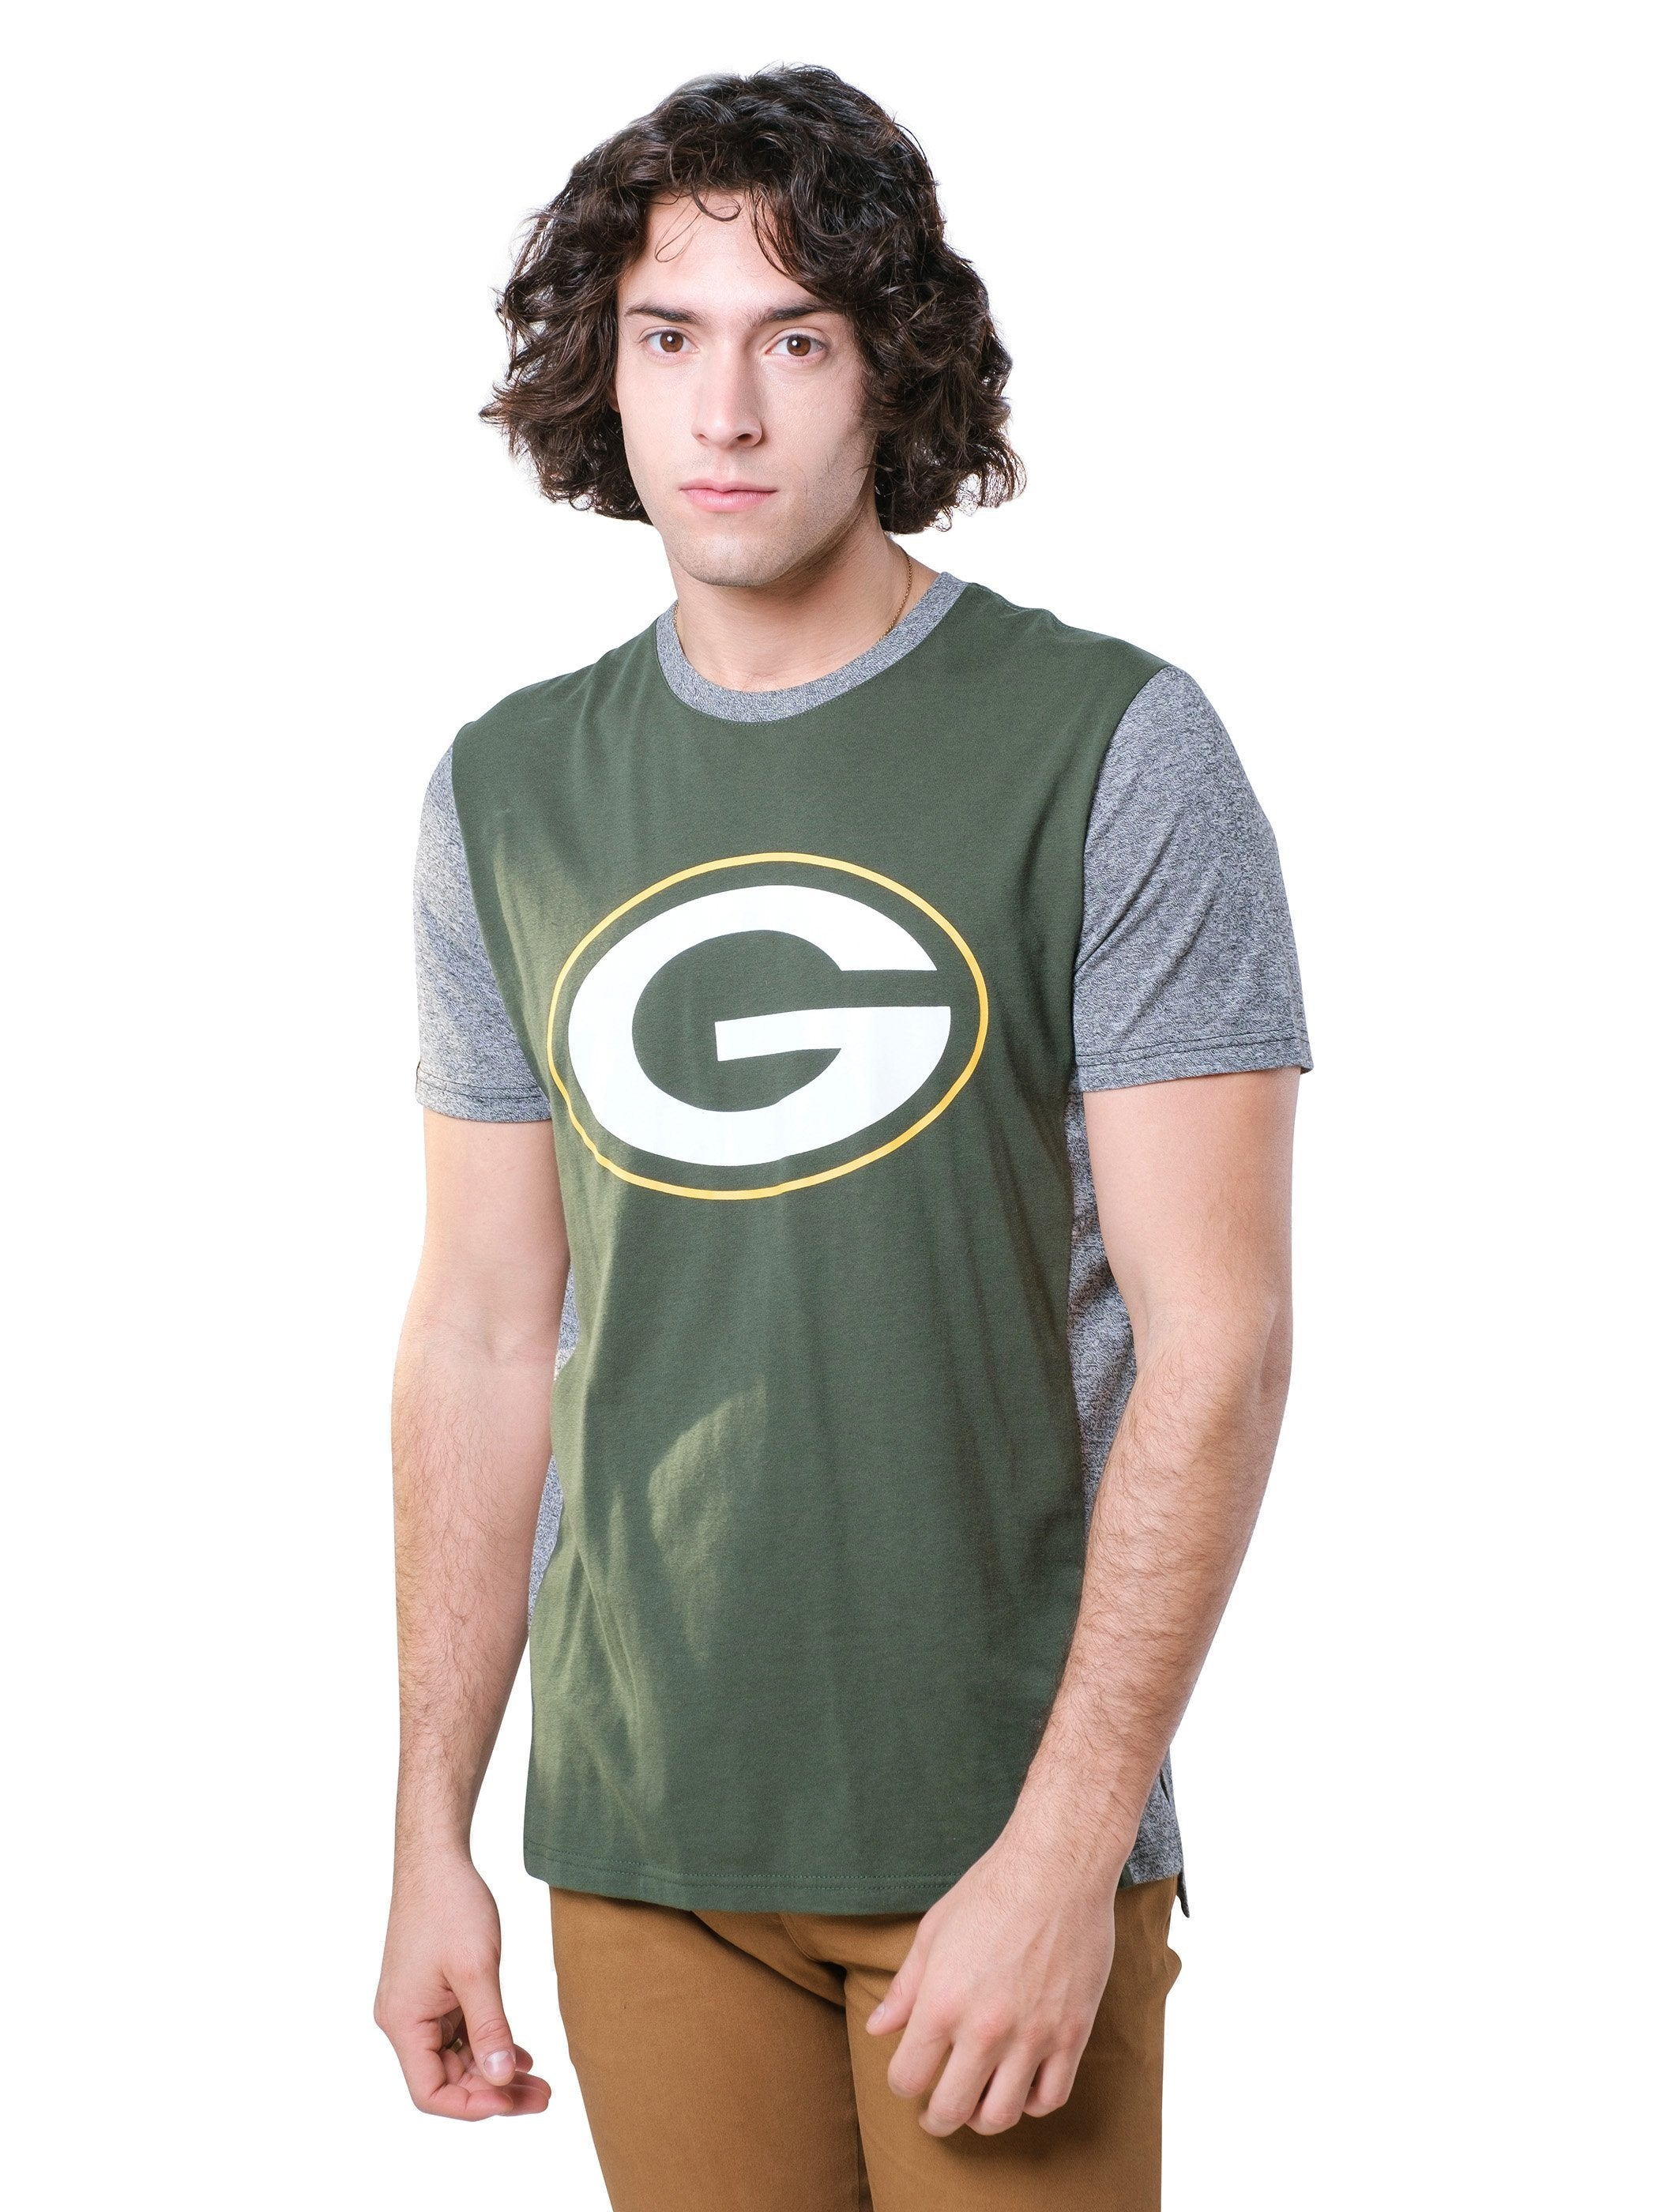 NFL Green Bay Packers Men's Raglan Short Sleeve Tee|Green Bay Packers